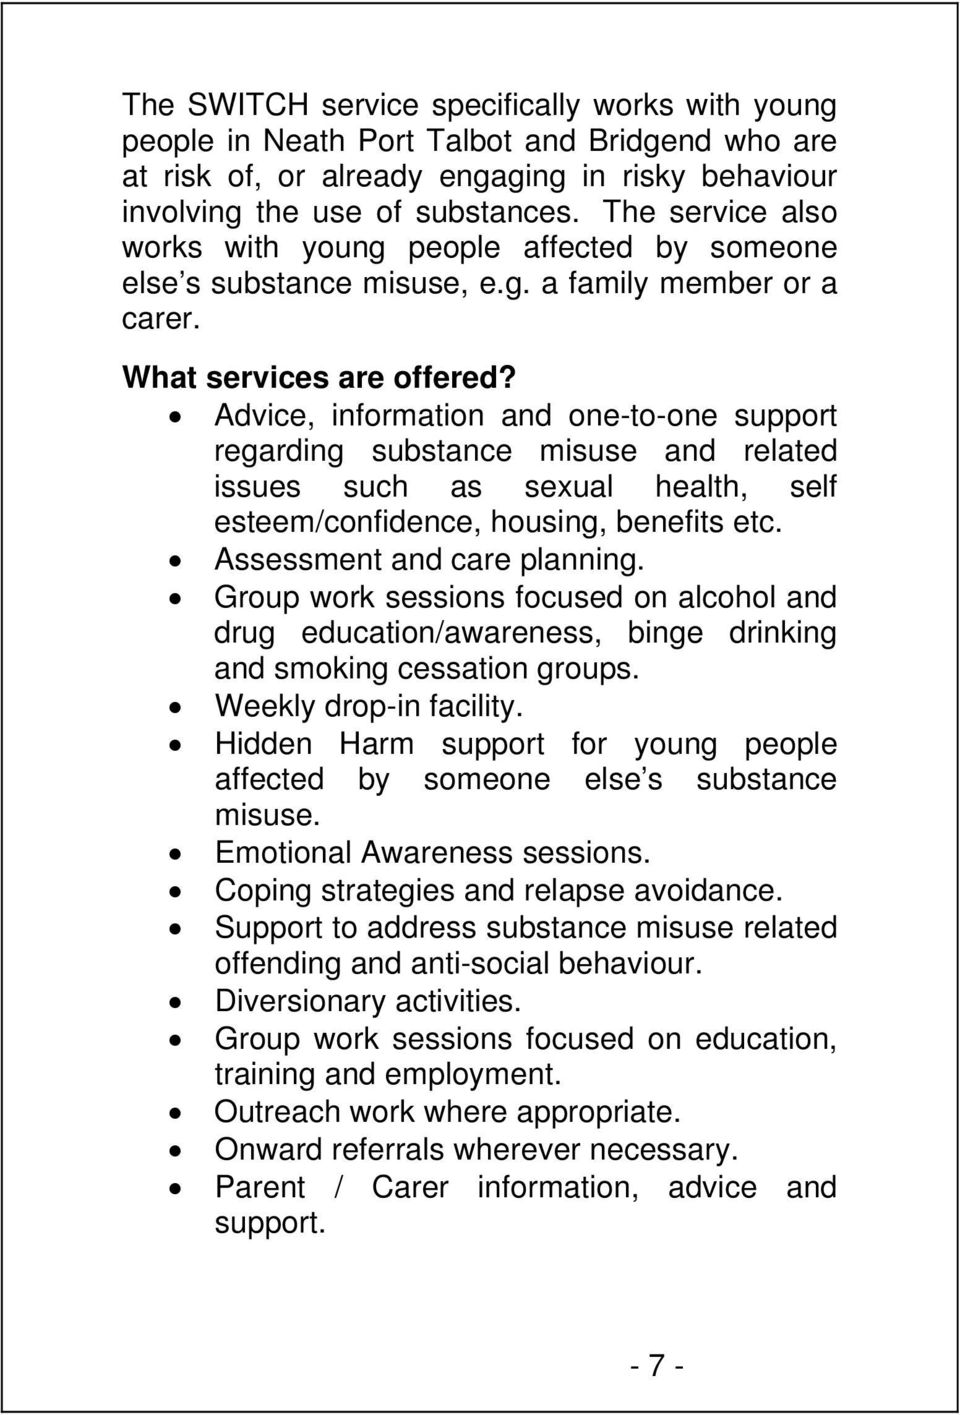 Advice, information and one-to-one support regarding substance misuse and related issues such as sexual health, self esteem/confidence, housing, benefits etc. Assessment and care planning.